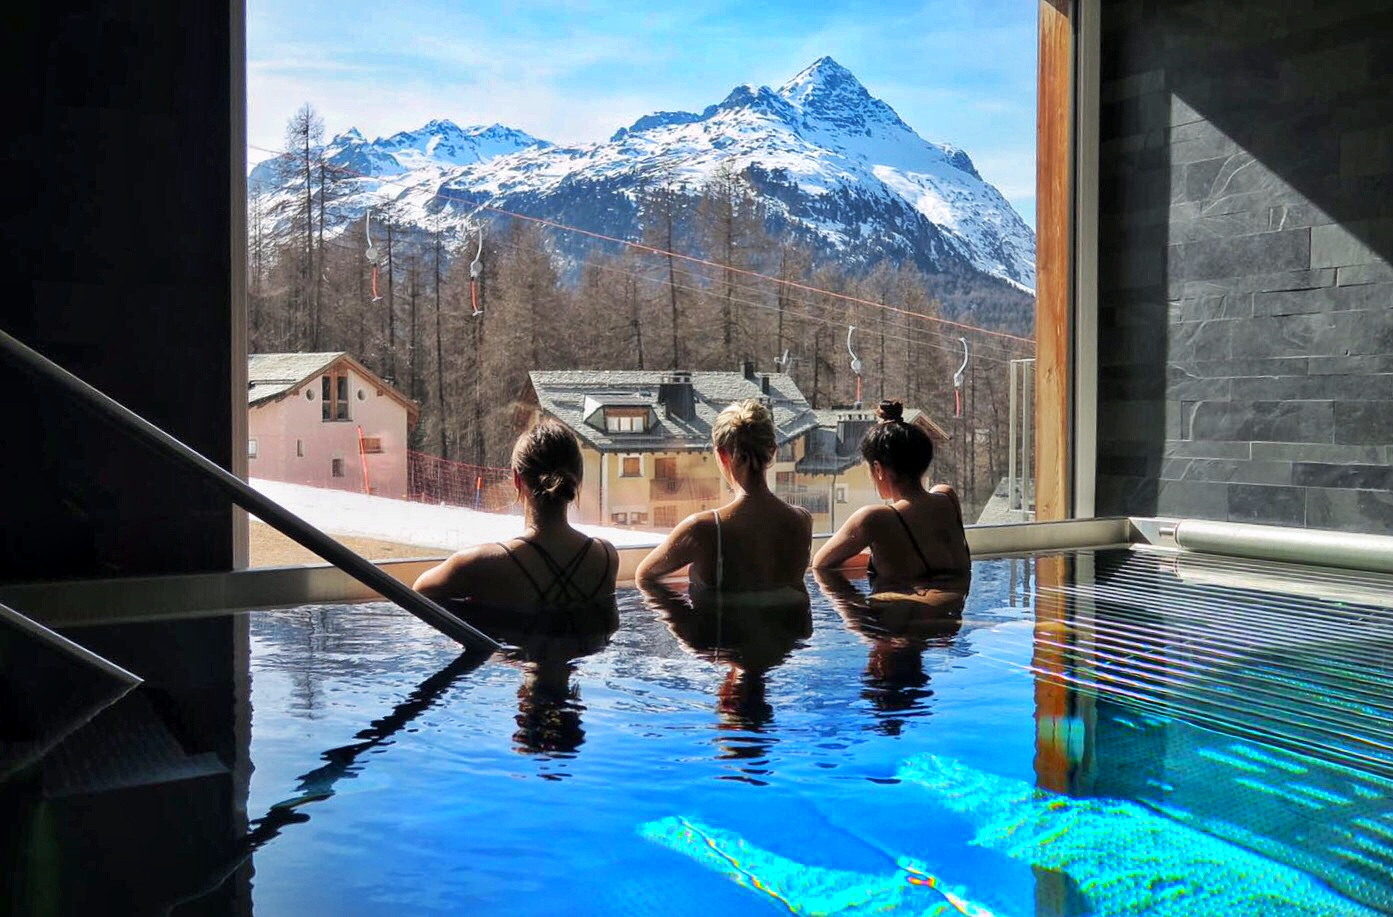 15 Things To Do In St Moritz Other Than Ski – The Wanderlust Bug